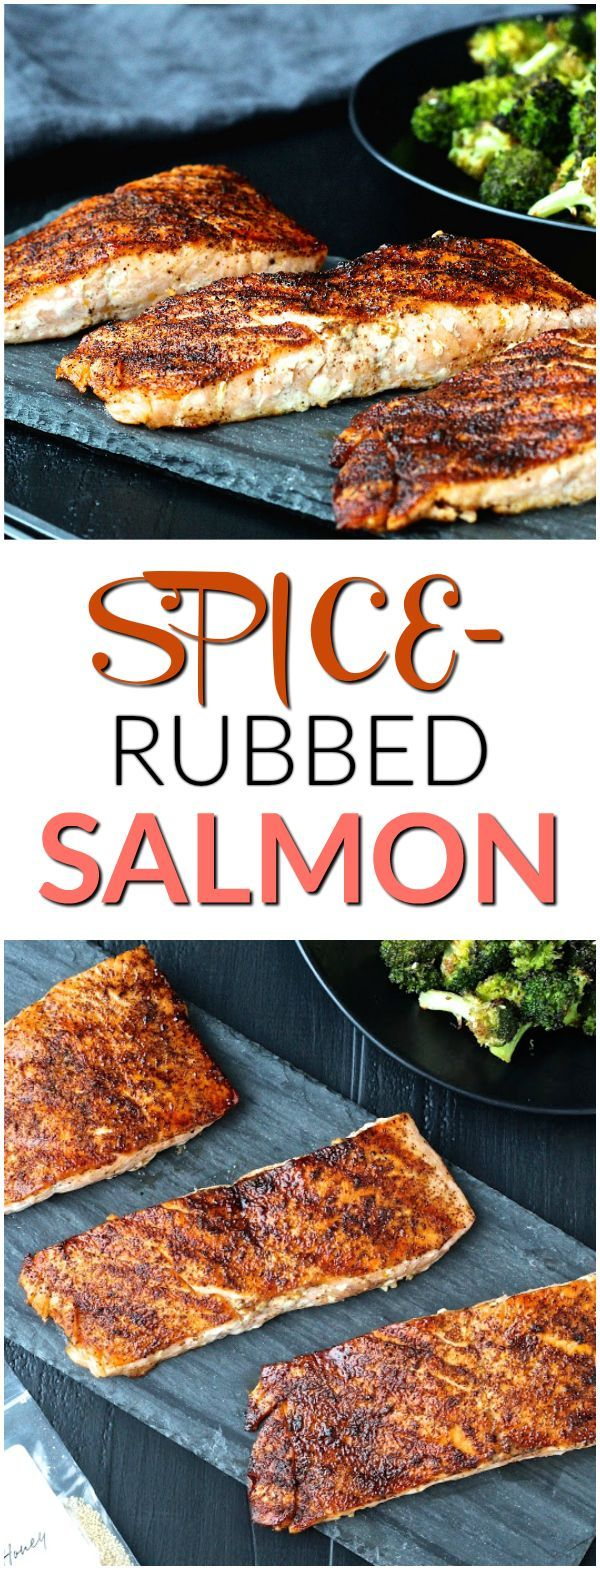 Spice-Rubbed Salmon | @foodiephysician